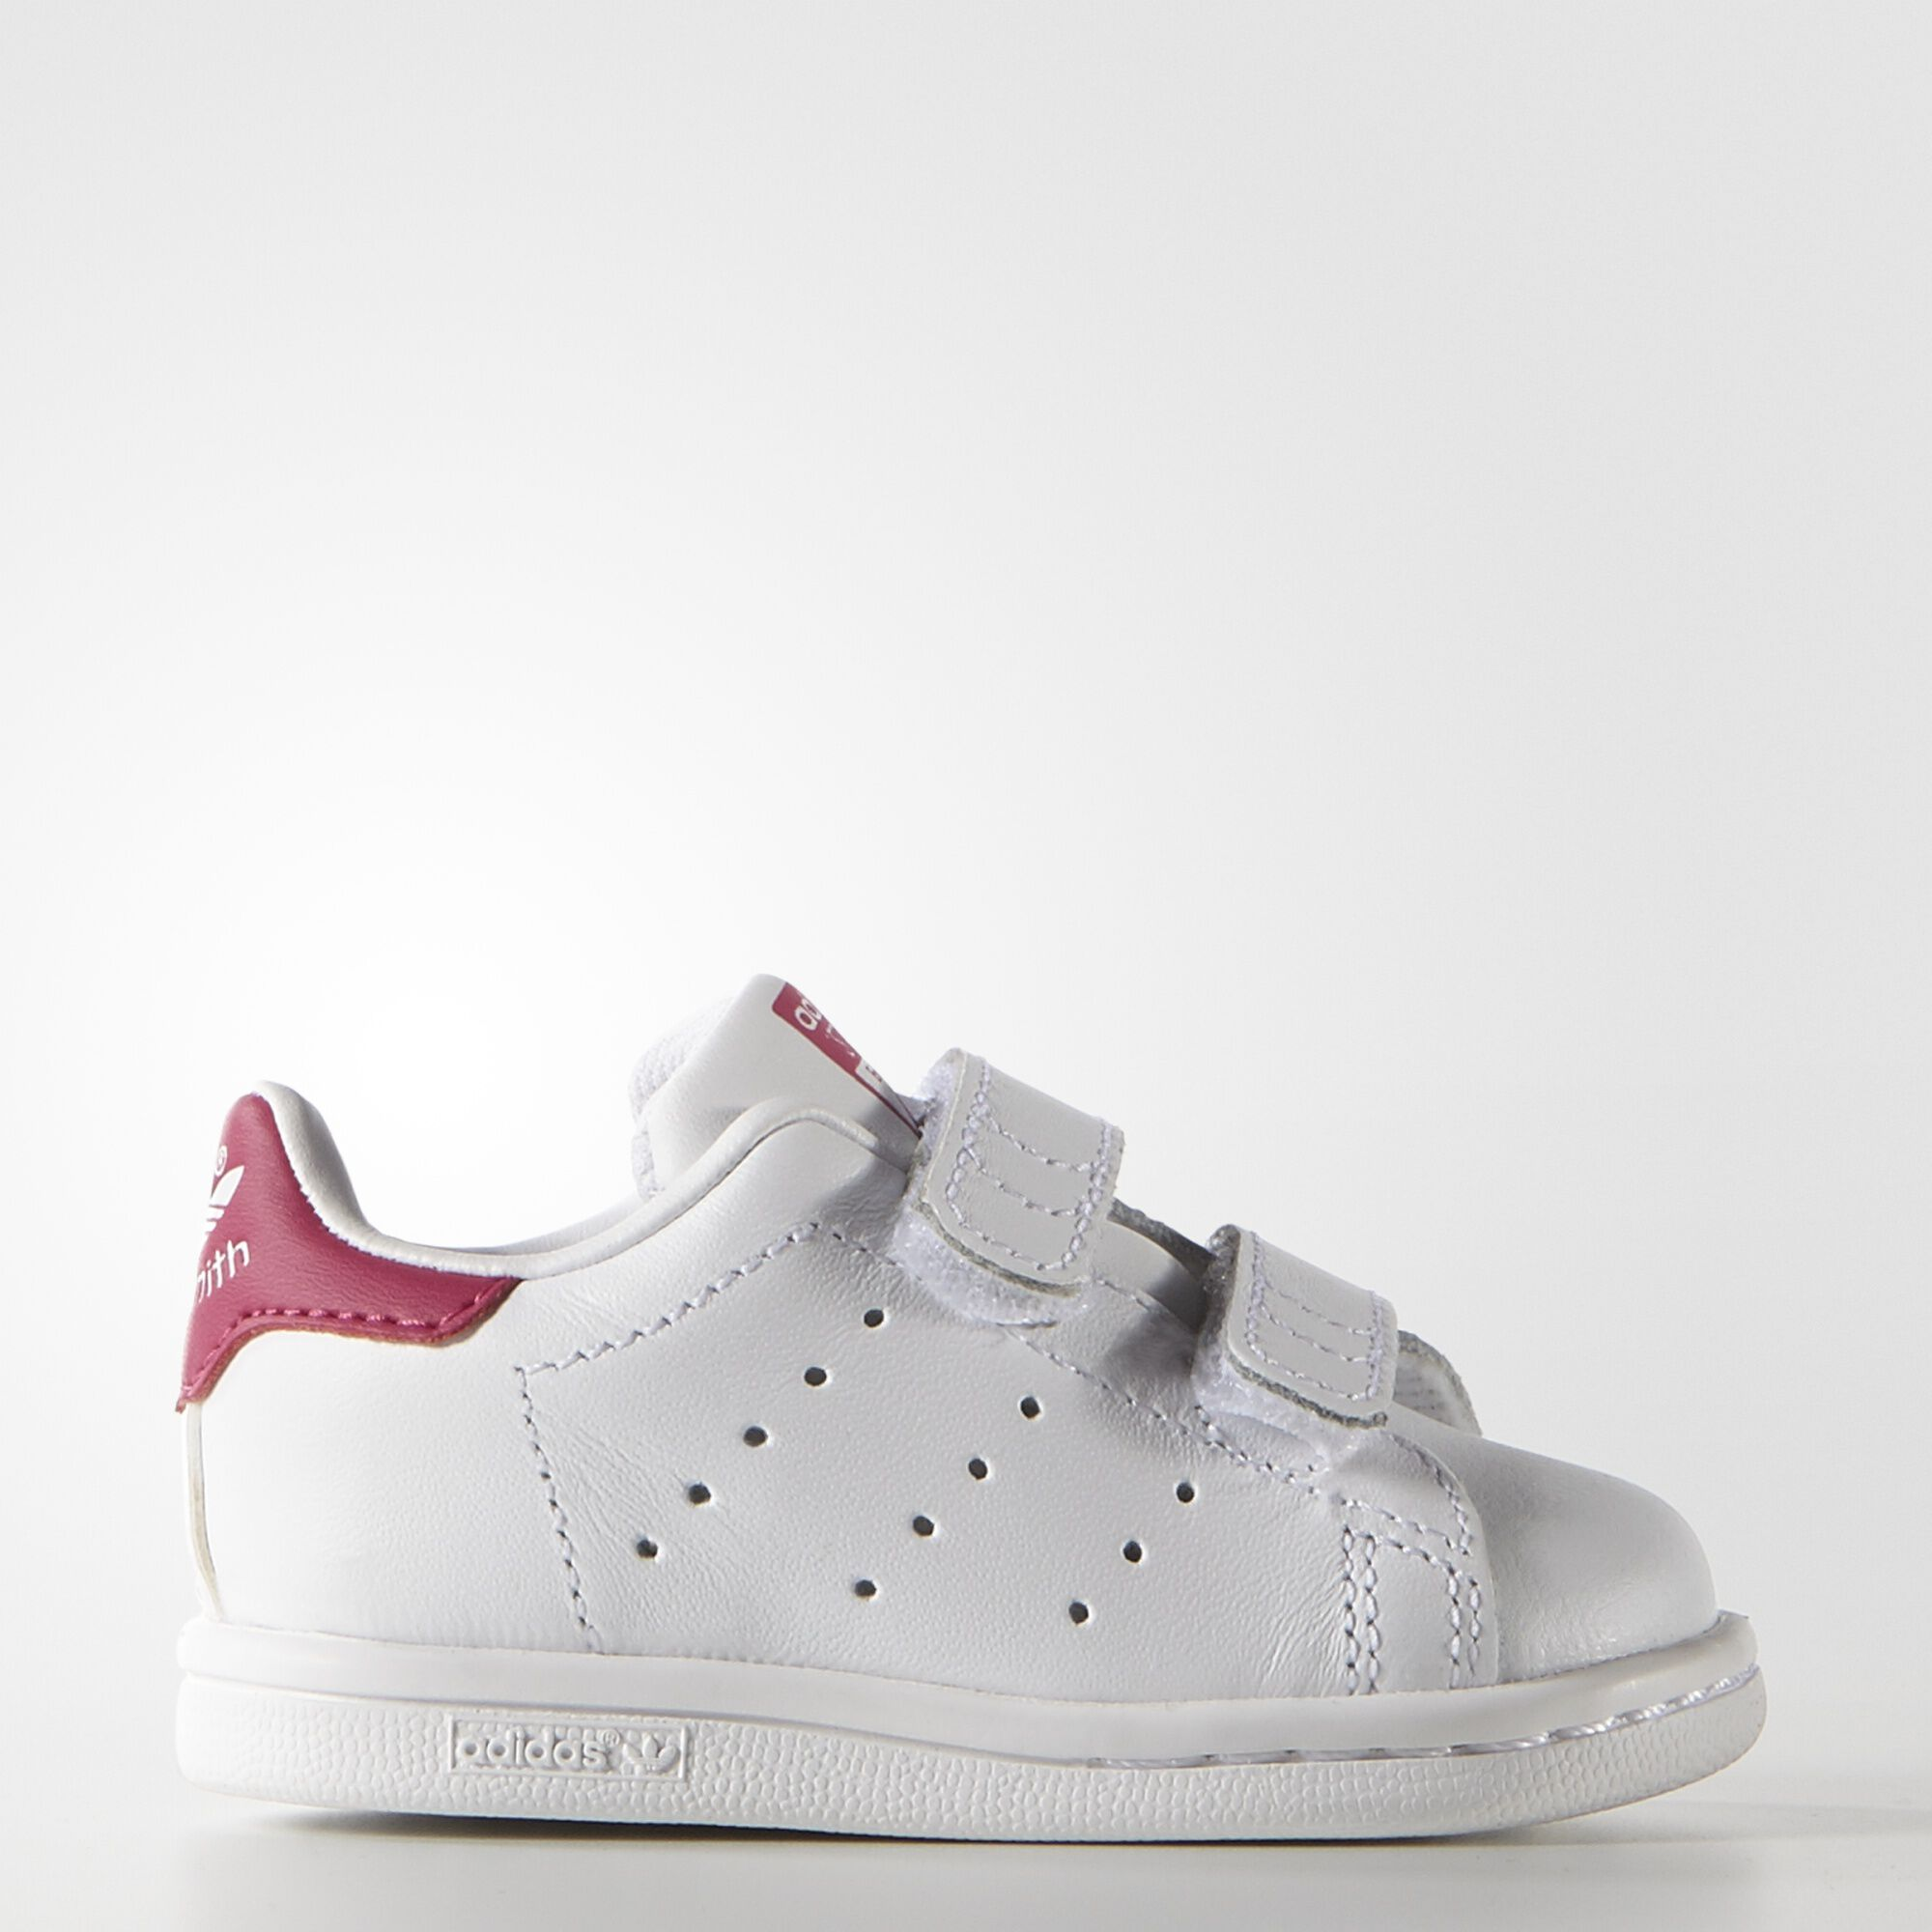 Adidas Originals Shoes For Sale Shoes For Baby